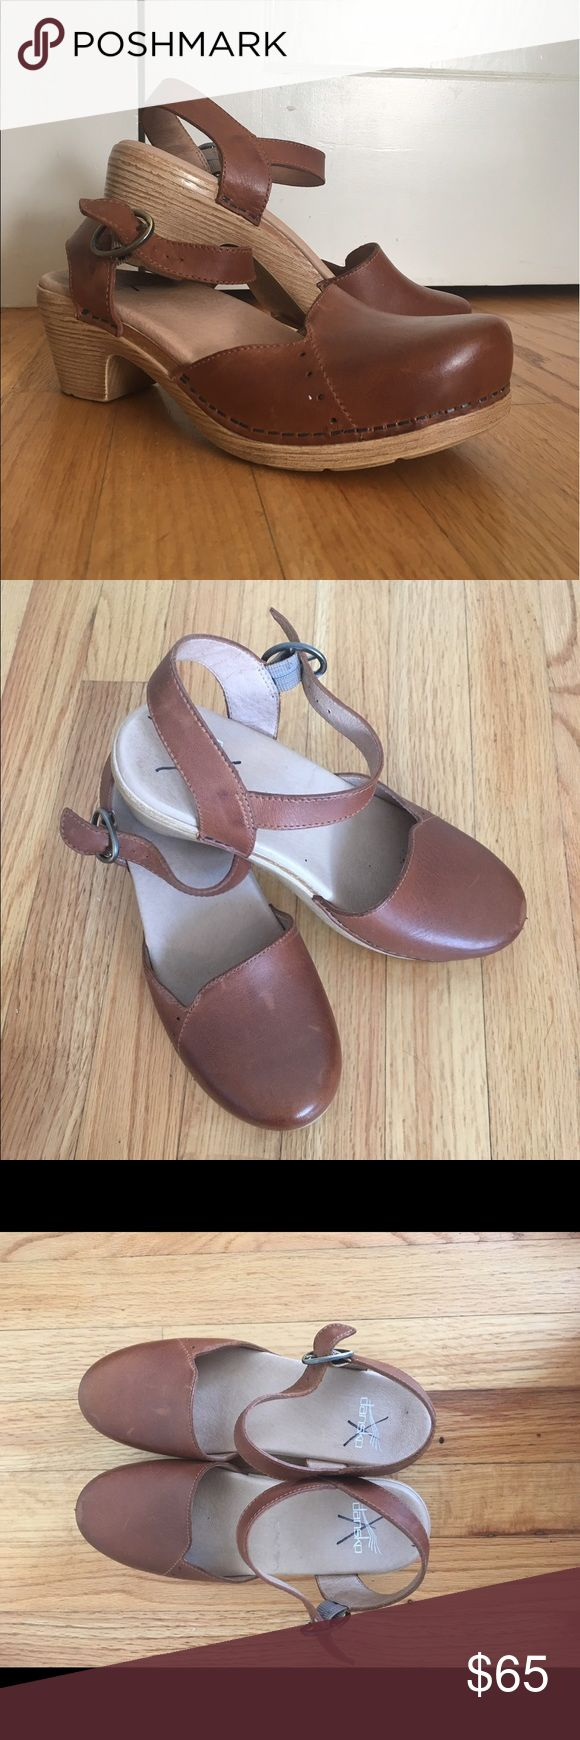 """Dansko """"Maisie"""" Mary Jane Clog (size 37) Only worn twice! In great, almost perfect condition. Bought at a sample sale (hence the black x's on the soles), and they're too narrow for my wide feet. Super, super comfortable, just too small. Brown leather with some wear and scuffs, but nothing that would prohibit you from wearing these for years to come. Very lightweight and soft. Dansko Shoes Mules & Clogs"""